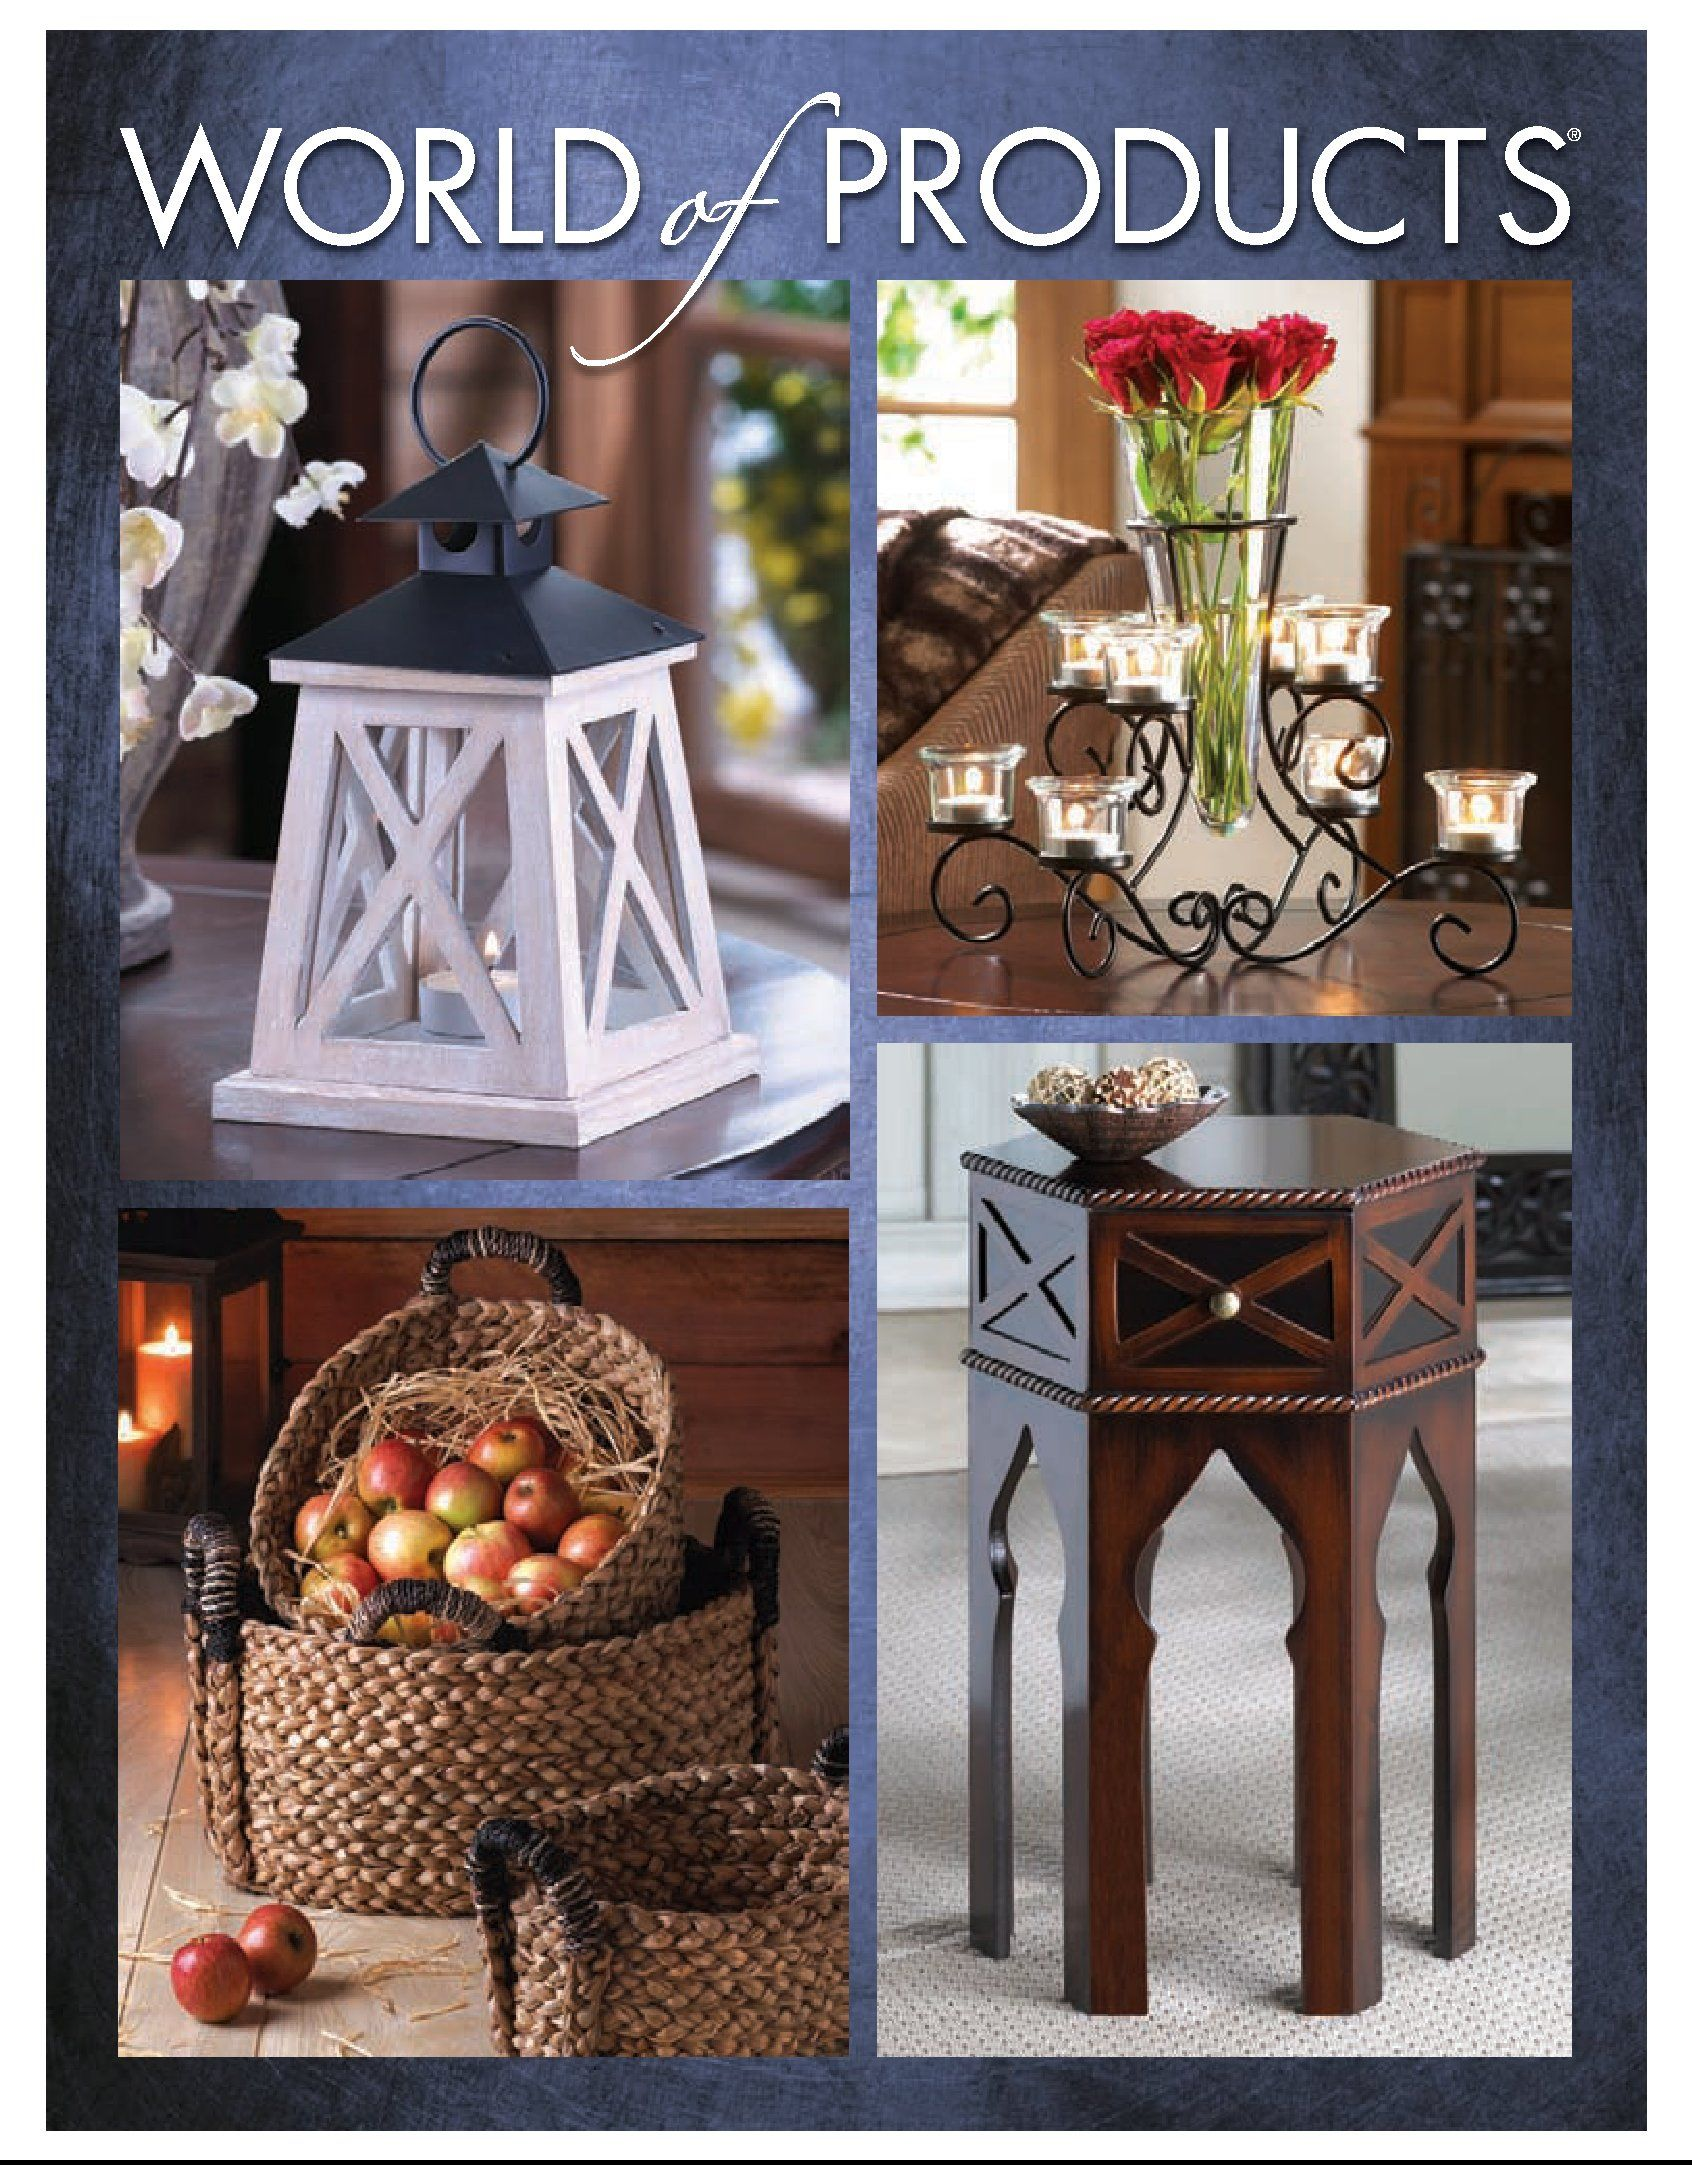 catalogs decor etc collections mail decorations items household order seasonal apple kitchen gift uploaded user sell